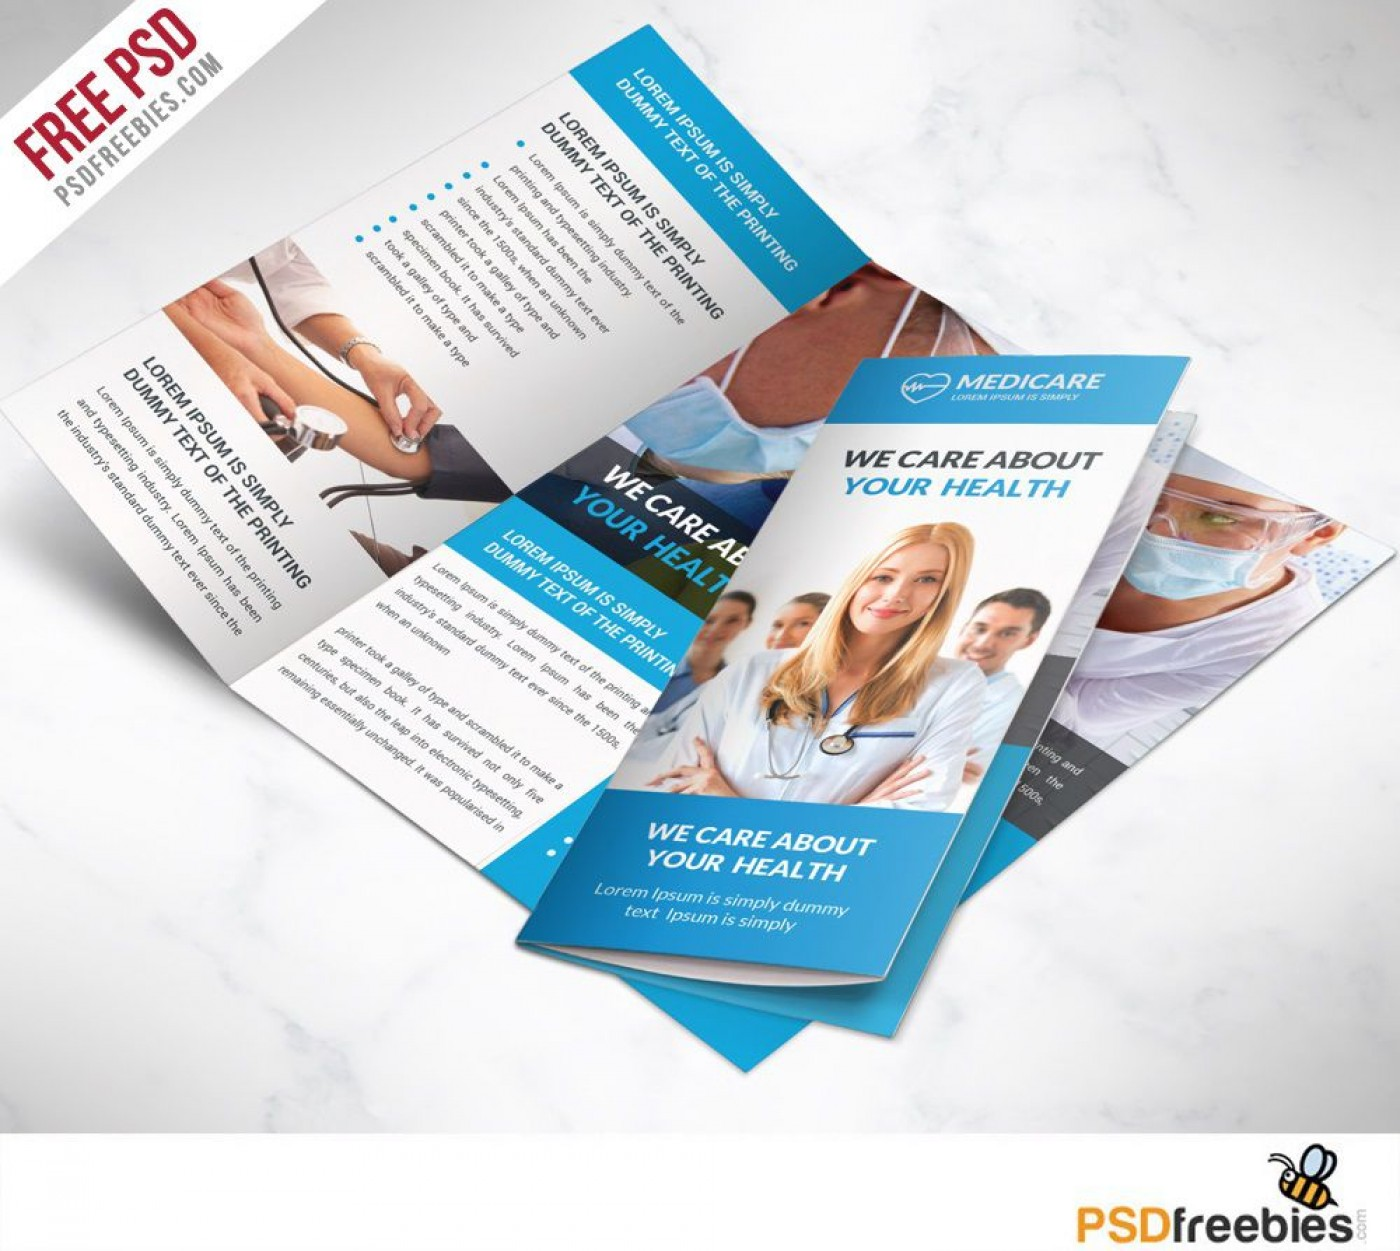 008 Remarkable Free Brochure Template Psd File Front And Back Highest Clarity 1400